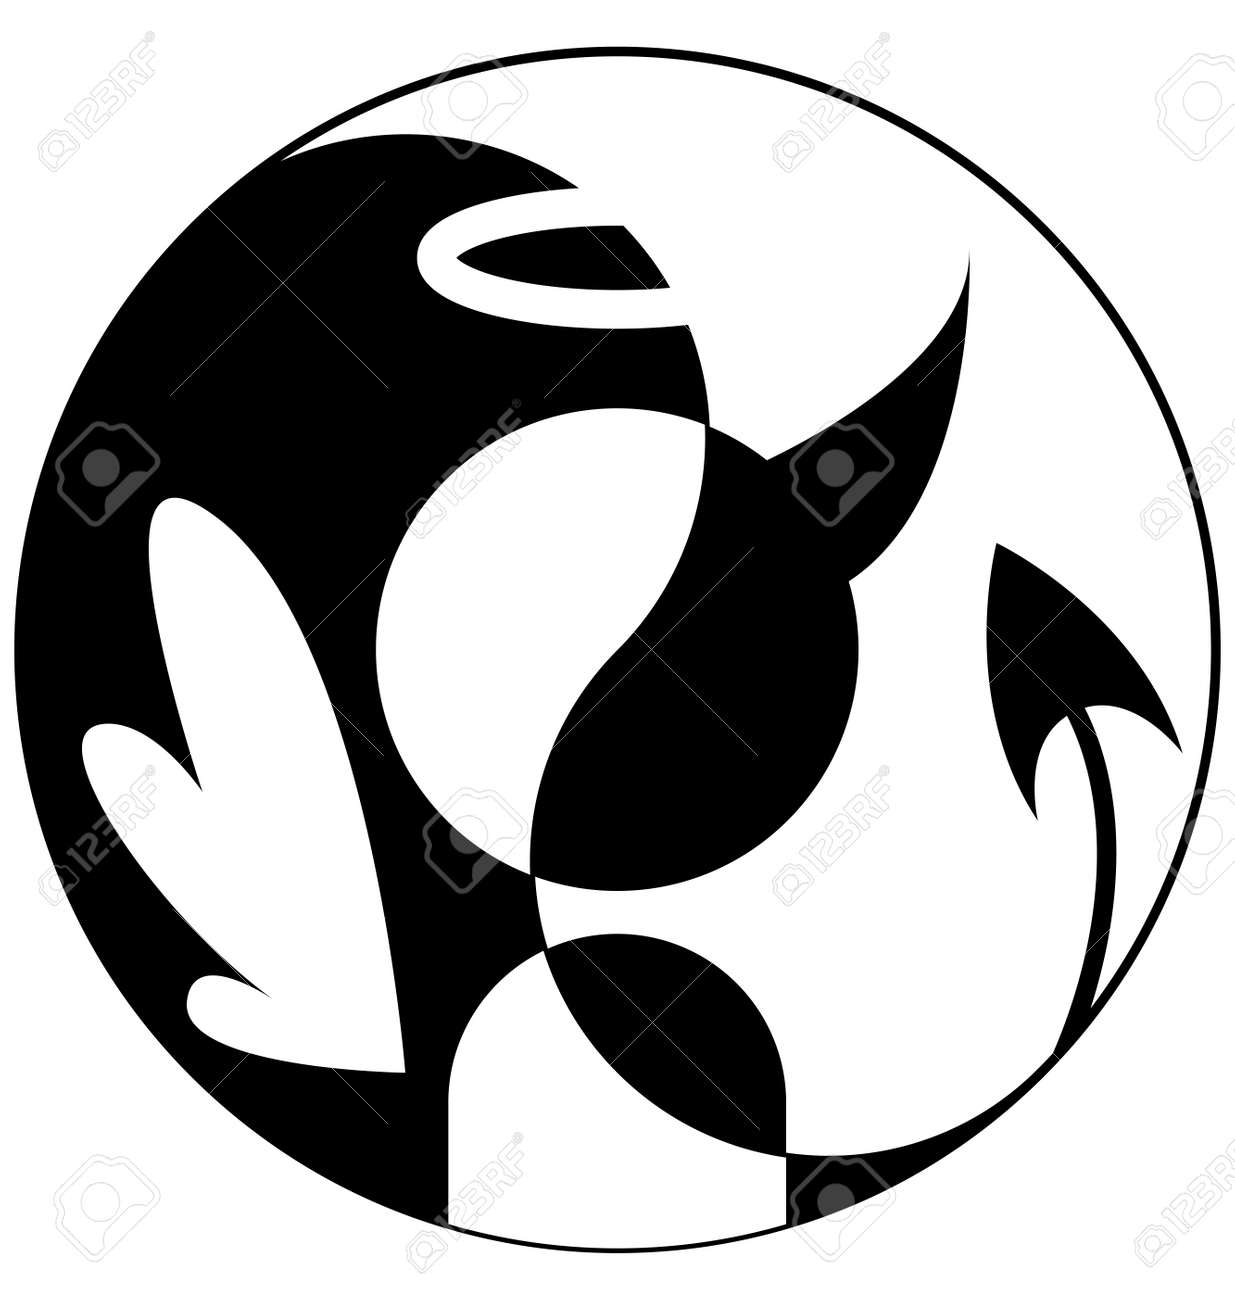 Silhouette Of Angel And Demon In Yin Yang Symbol